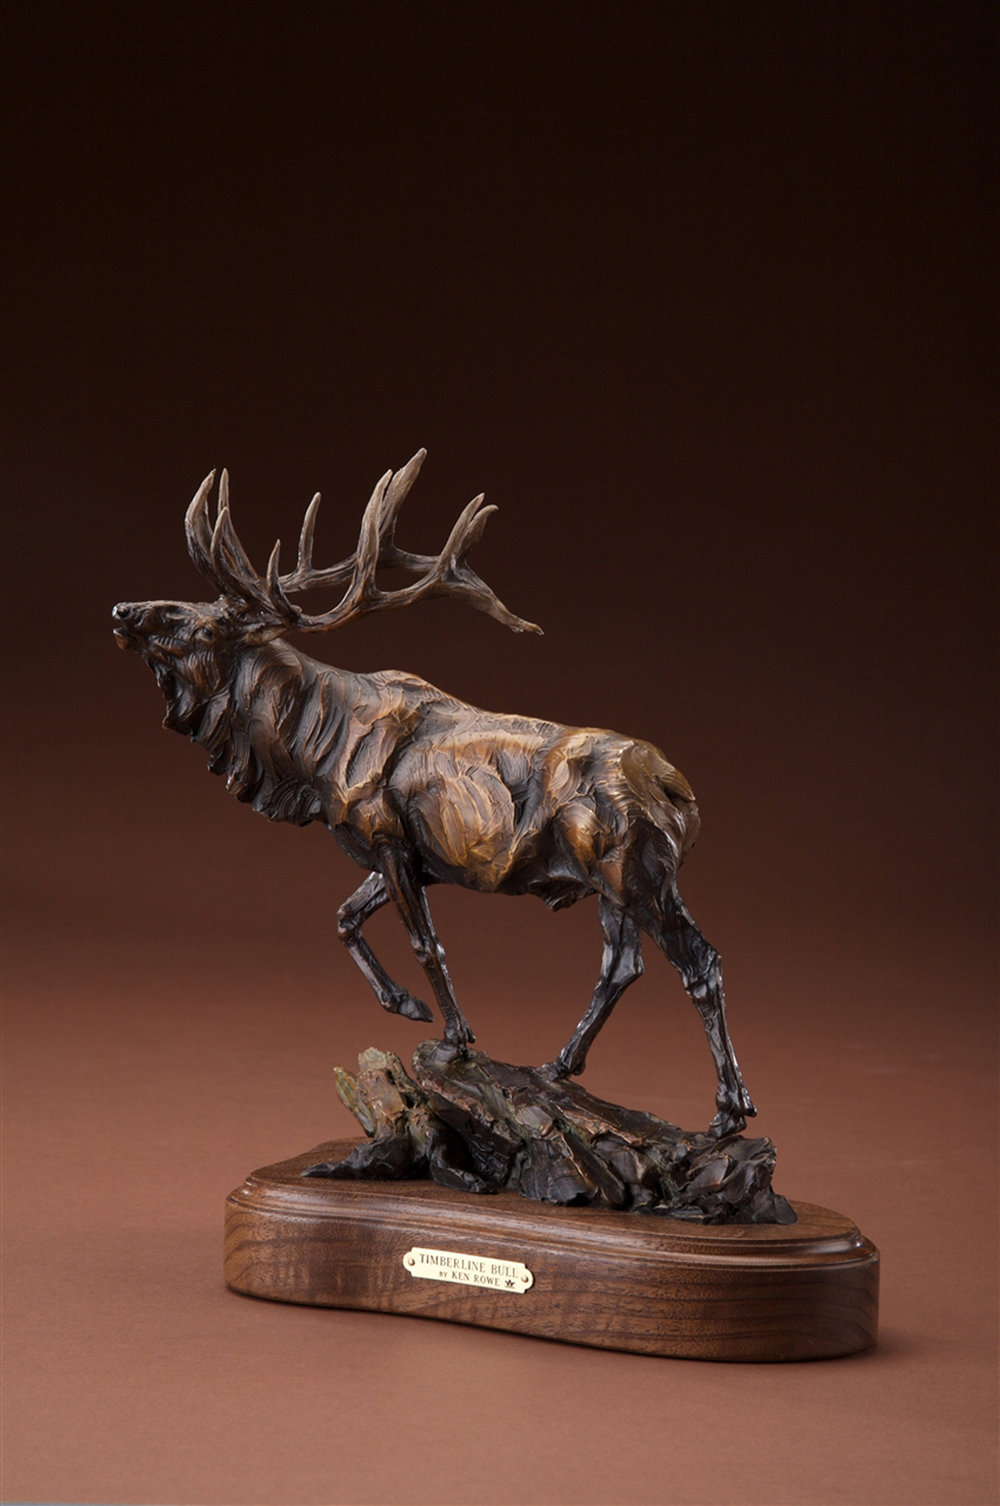 "Timberline Bull Maquette | 10.5"" x 10"" x 5.5"" 